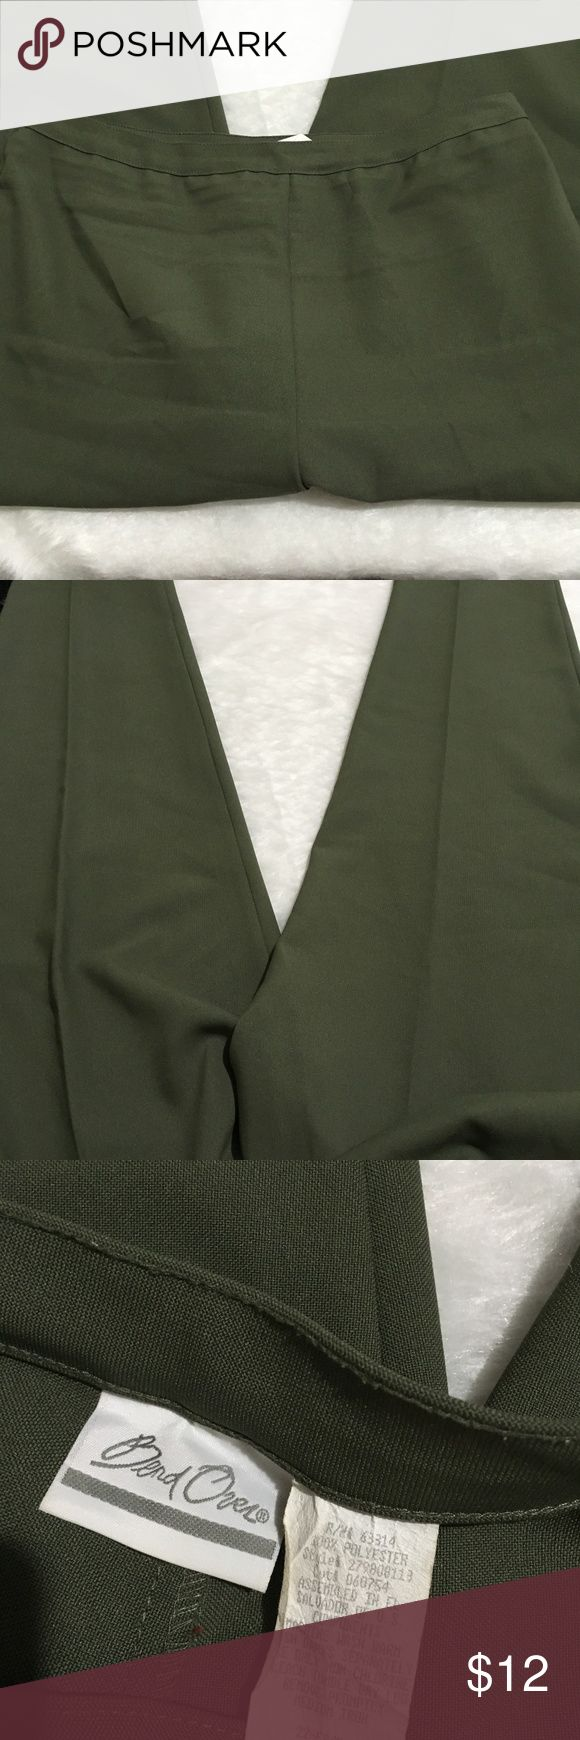 "BEND OVER SIZE 22W TALL WOMEN'S DRESS PANTS BEND OVER SIZE 22W TALL WOMEN'S green DRESS PANTS   gently used with SMALL STAINS.   waist laying flat- 17"" rise- 14"" rear rise-16"" inseam- 31 t6-17 Pants Trousers"